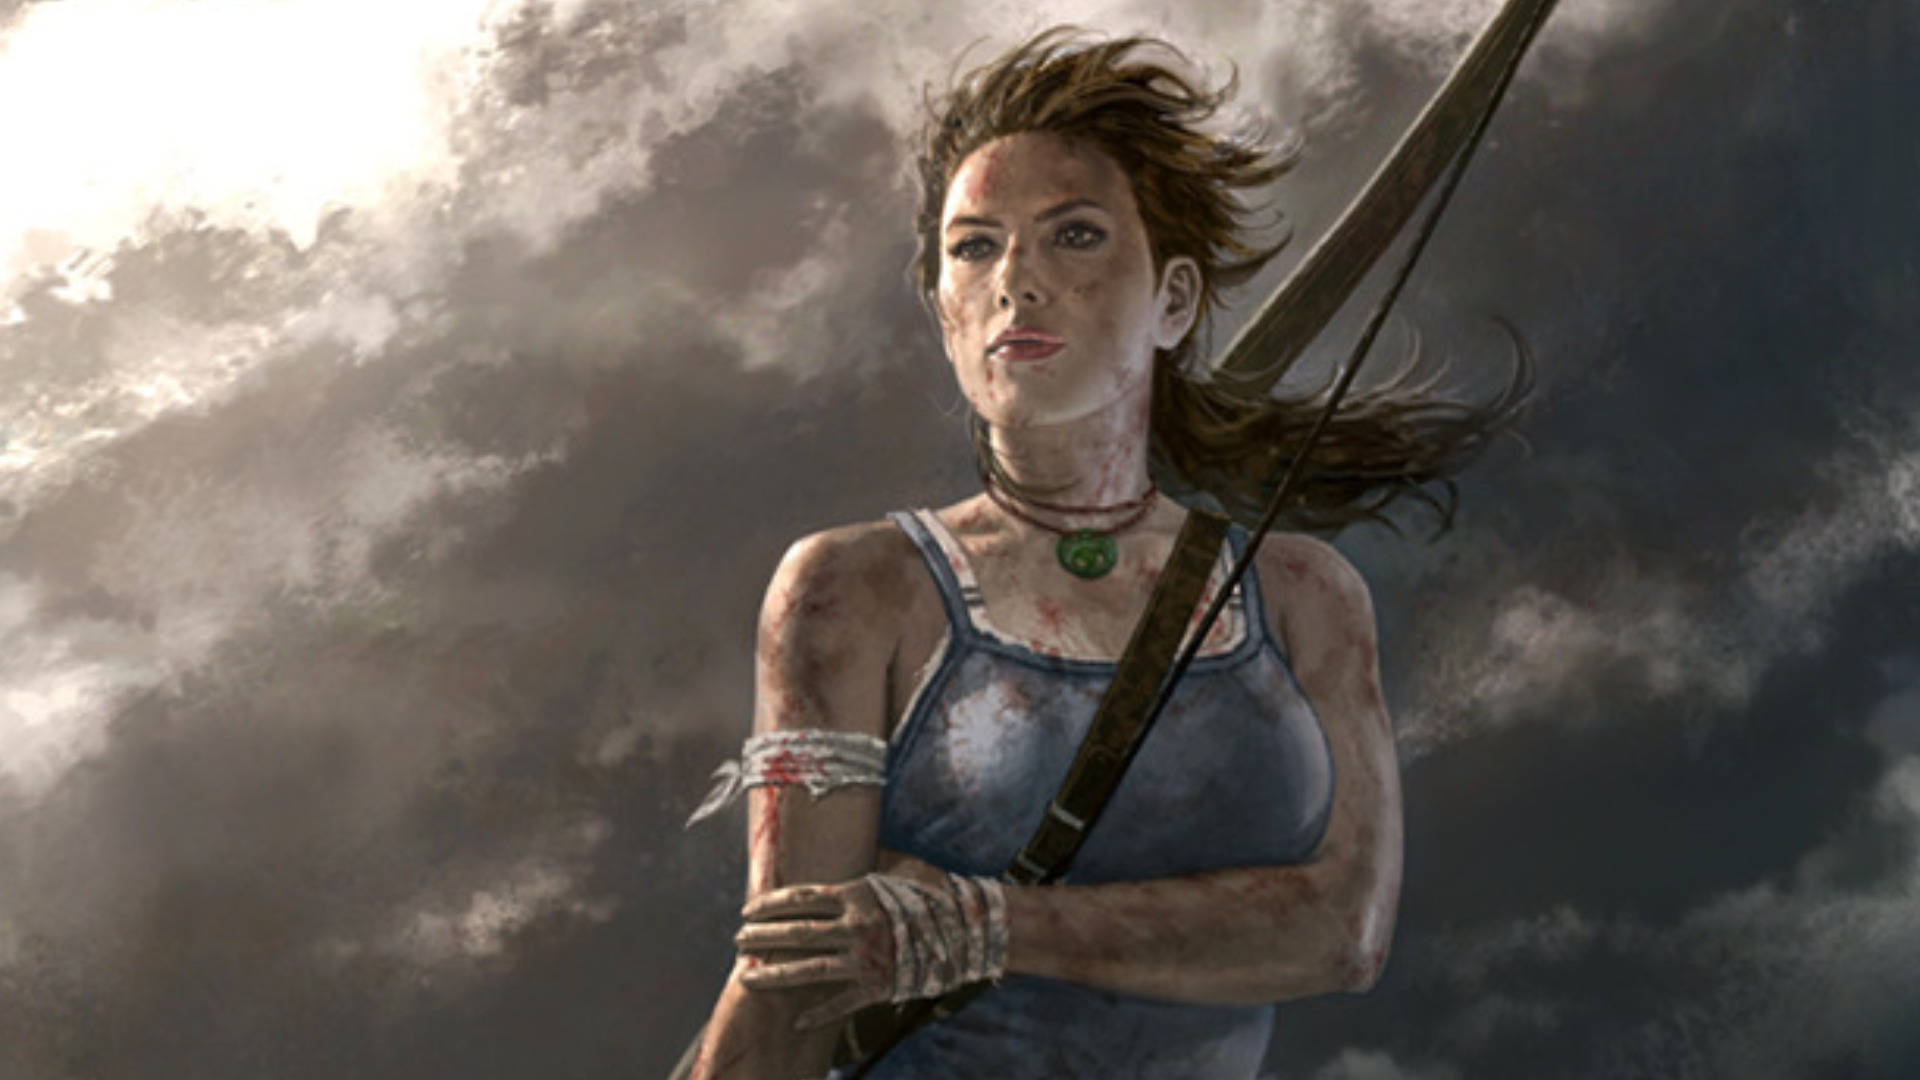 tomb raider 1920x1080 wallpaper